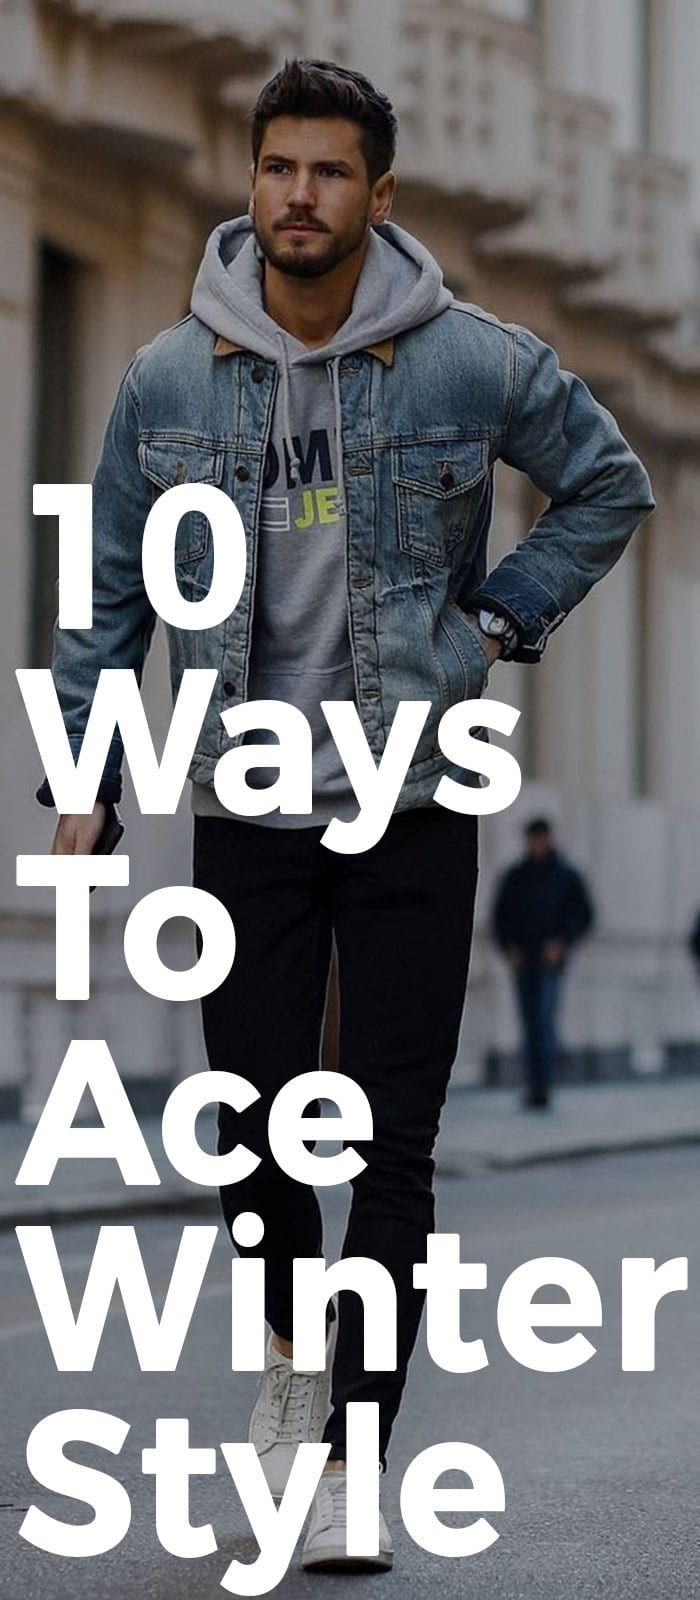 10 Ways To Ace Winter Style!